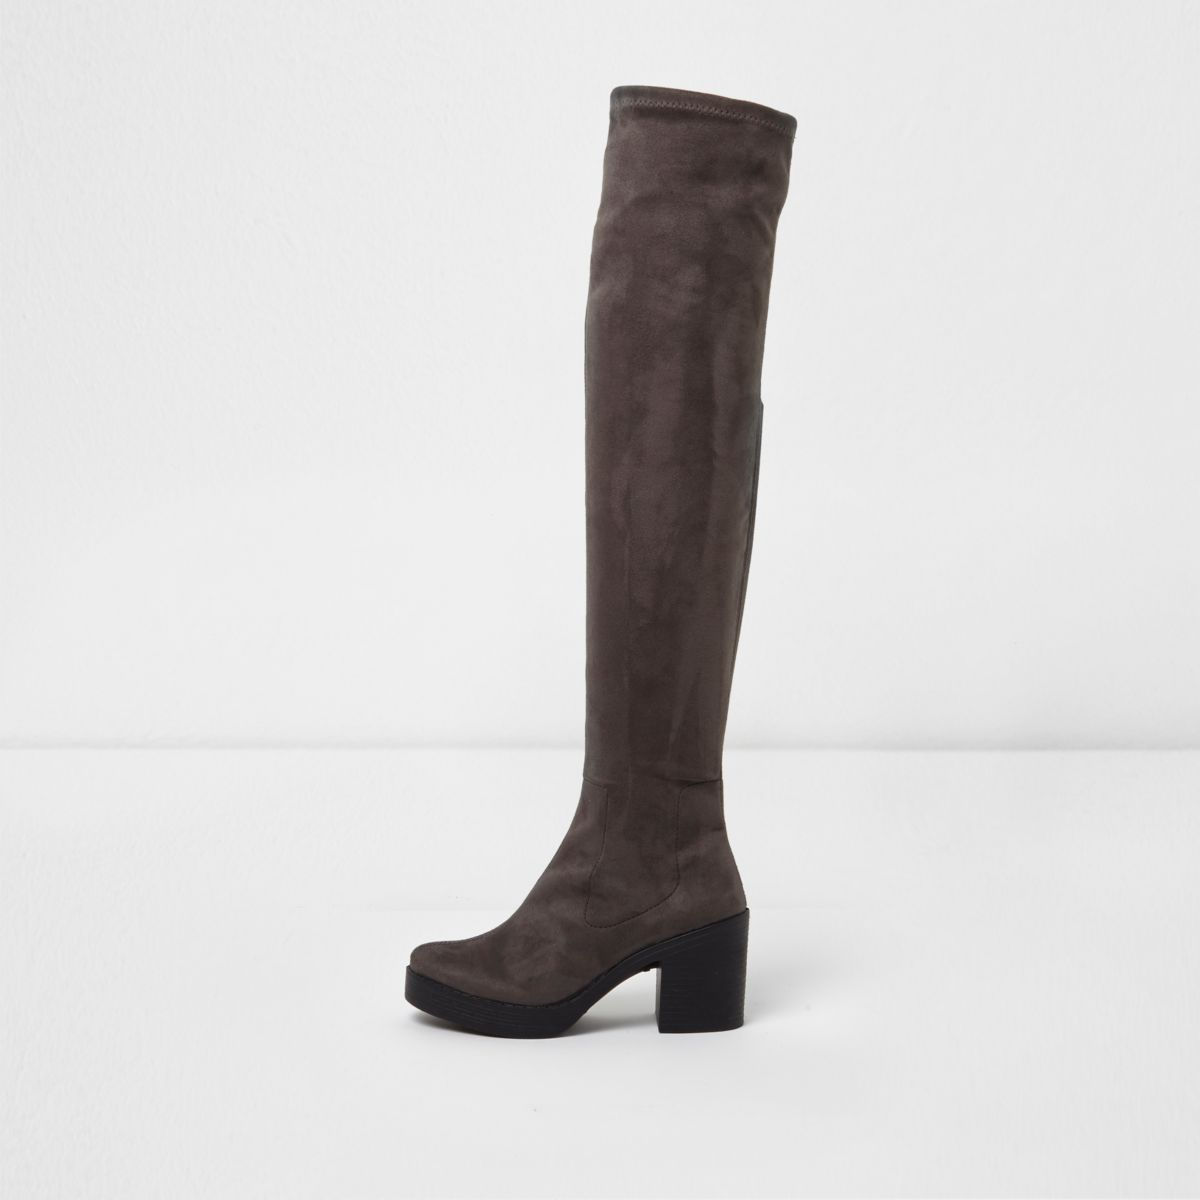 River Island Womens chunky sole over the knee boots Order Cheap Price Clearance For Cheap Clearance Professional Cheap Amazing Price svD7Jo